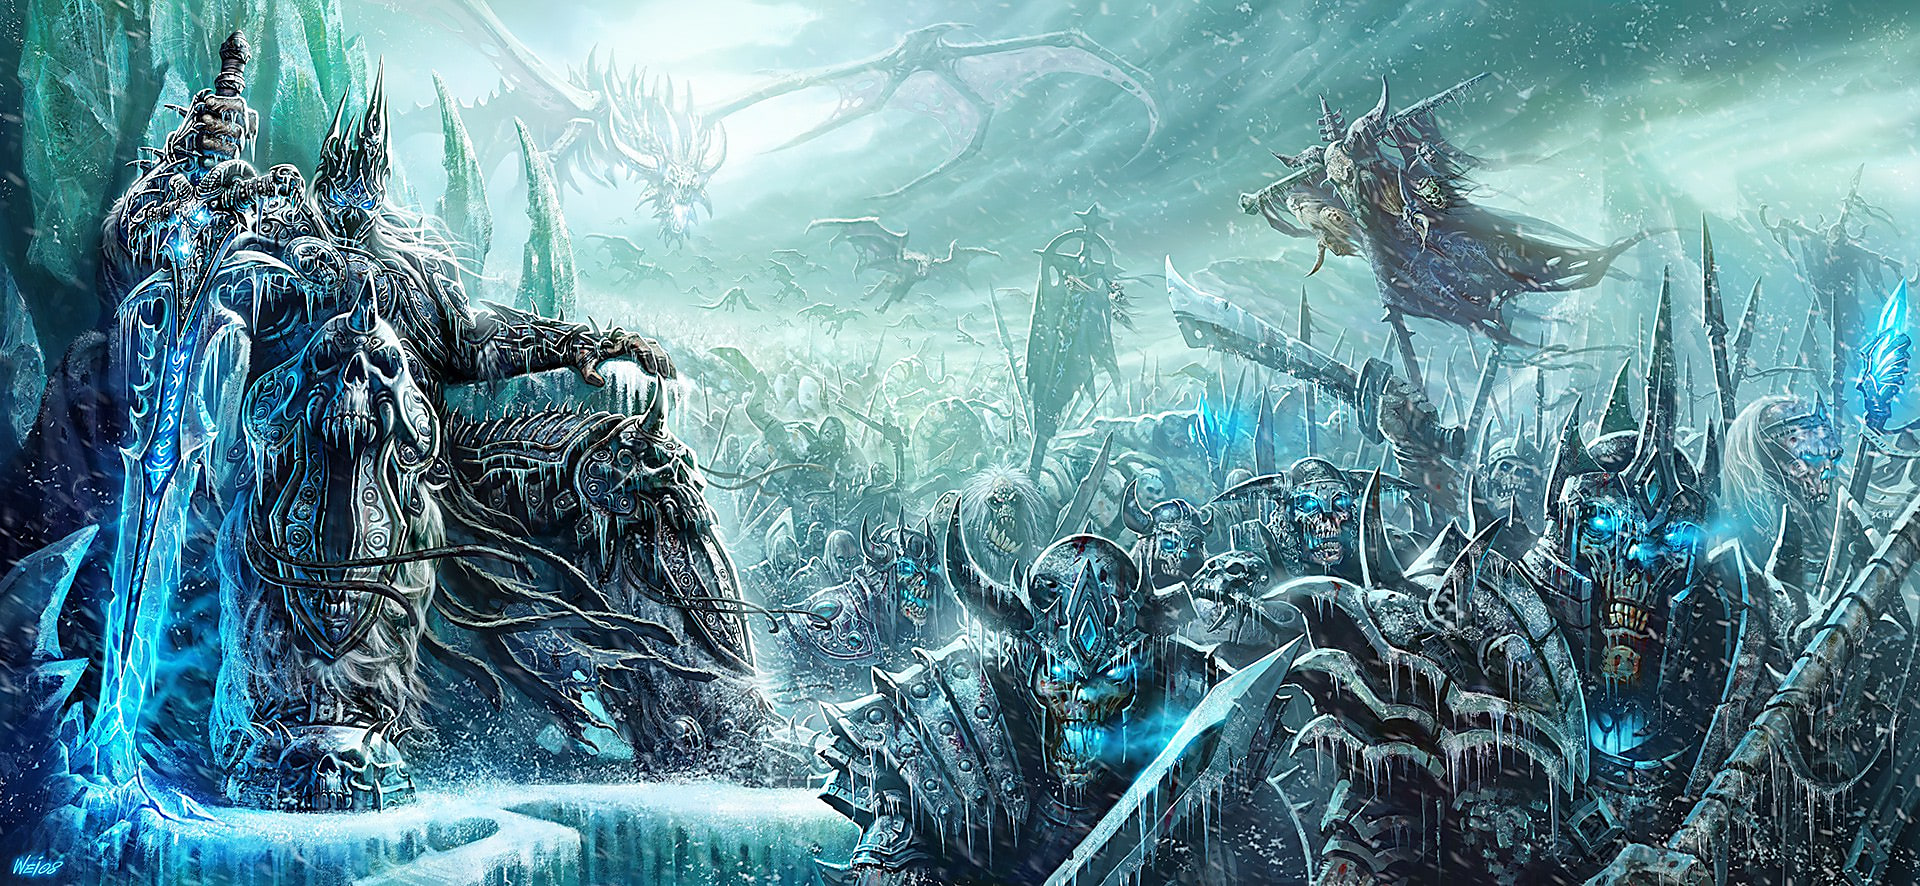 The-Lich-King_world-of-warcraft_1920.jpg